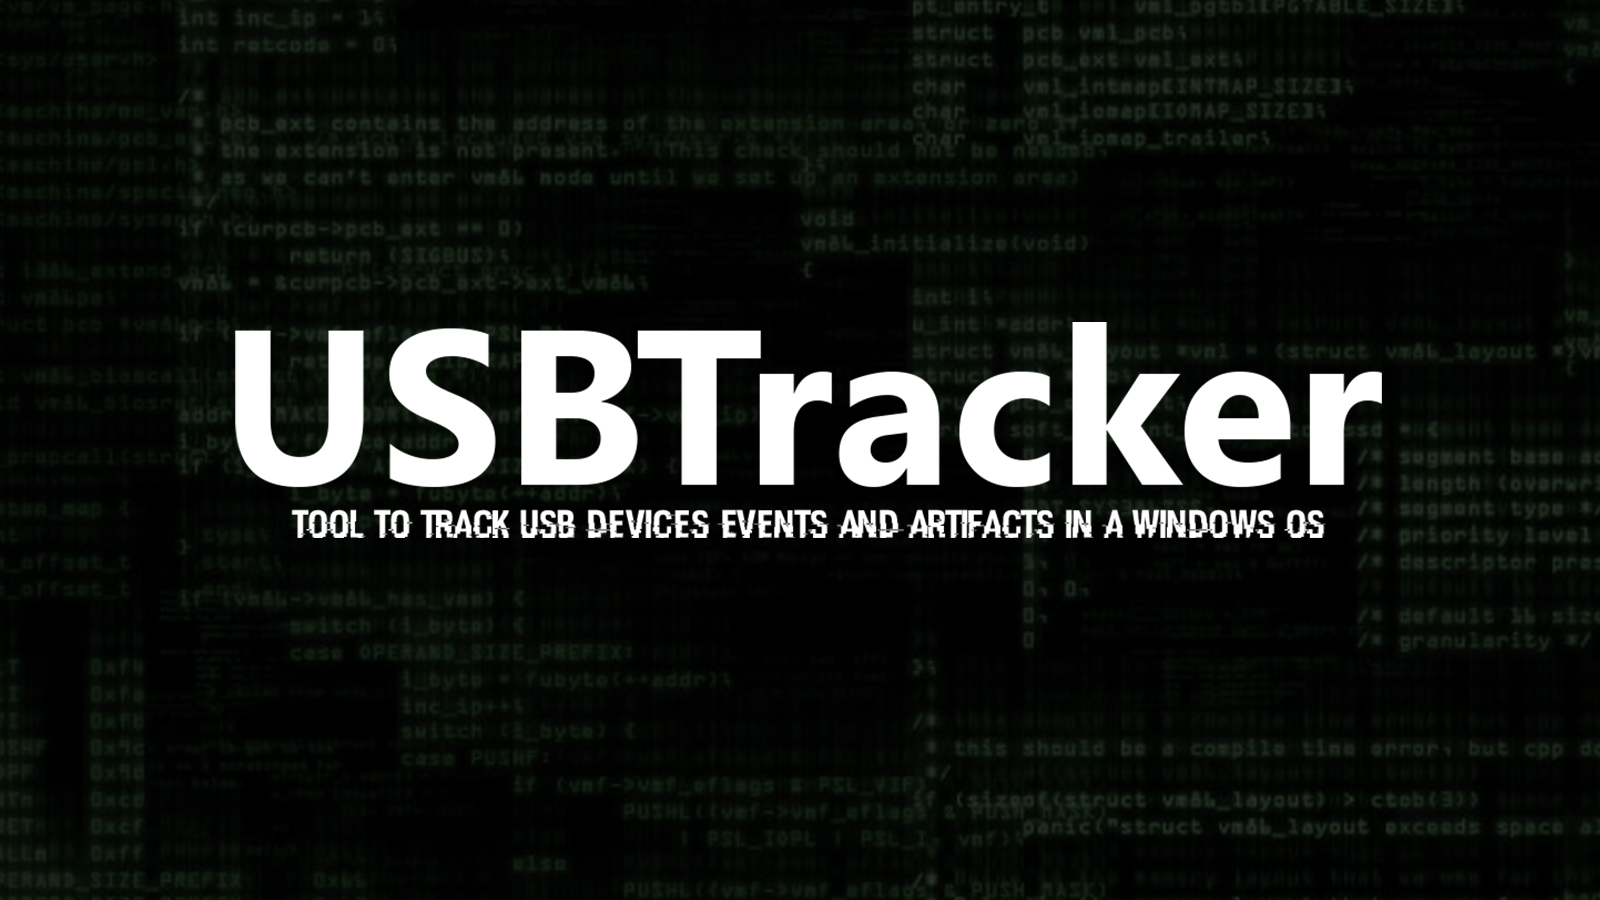 USBTracker - Tool To Track USB Devices Events and Artifacts In a Windows OS